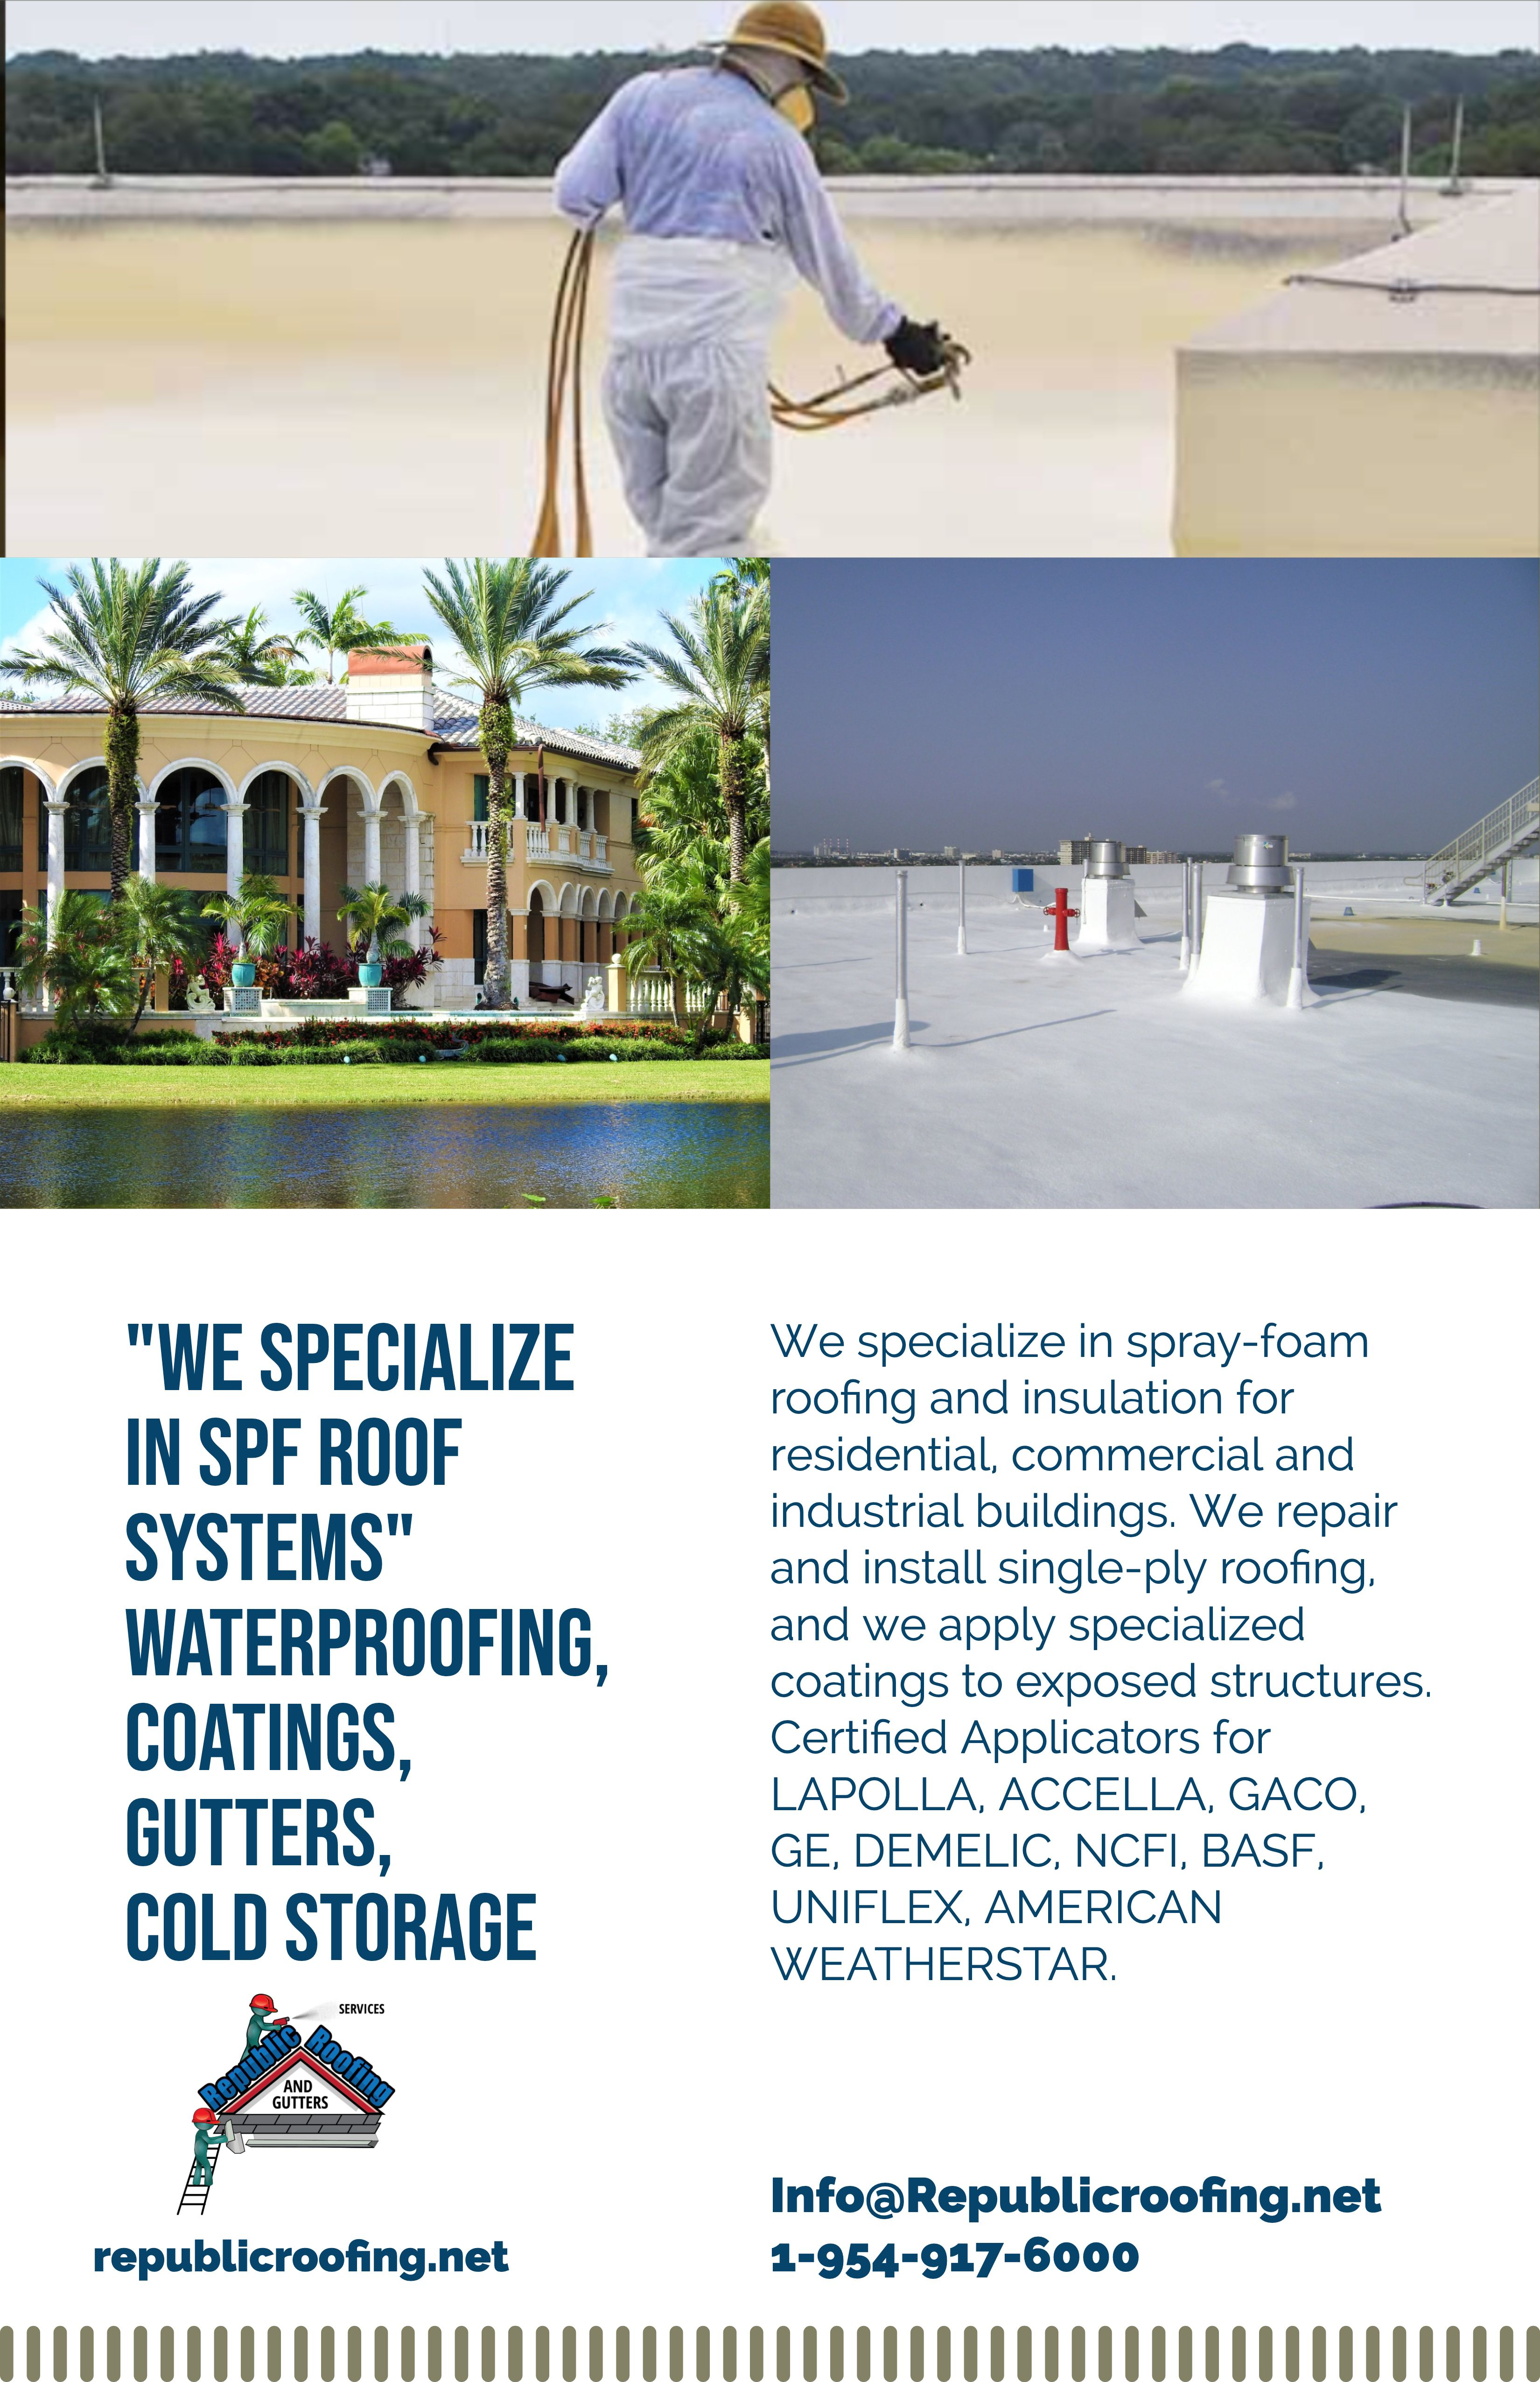 Roofing Services South Florida Roofing Roofing Services Foam Roofing